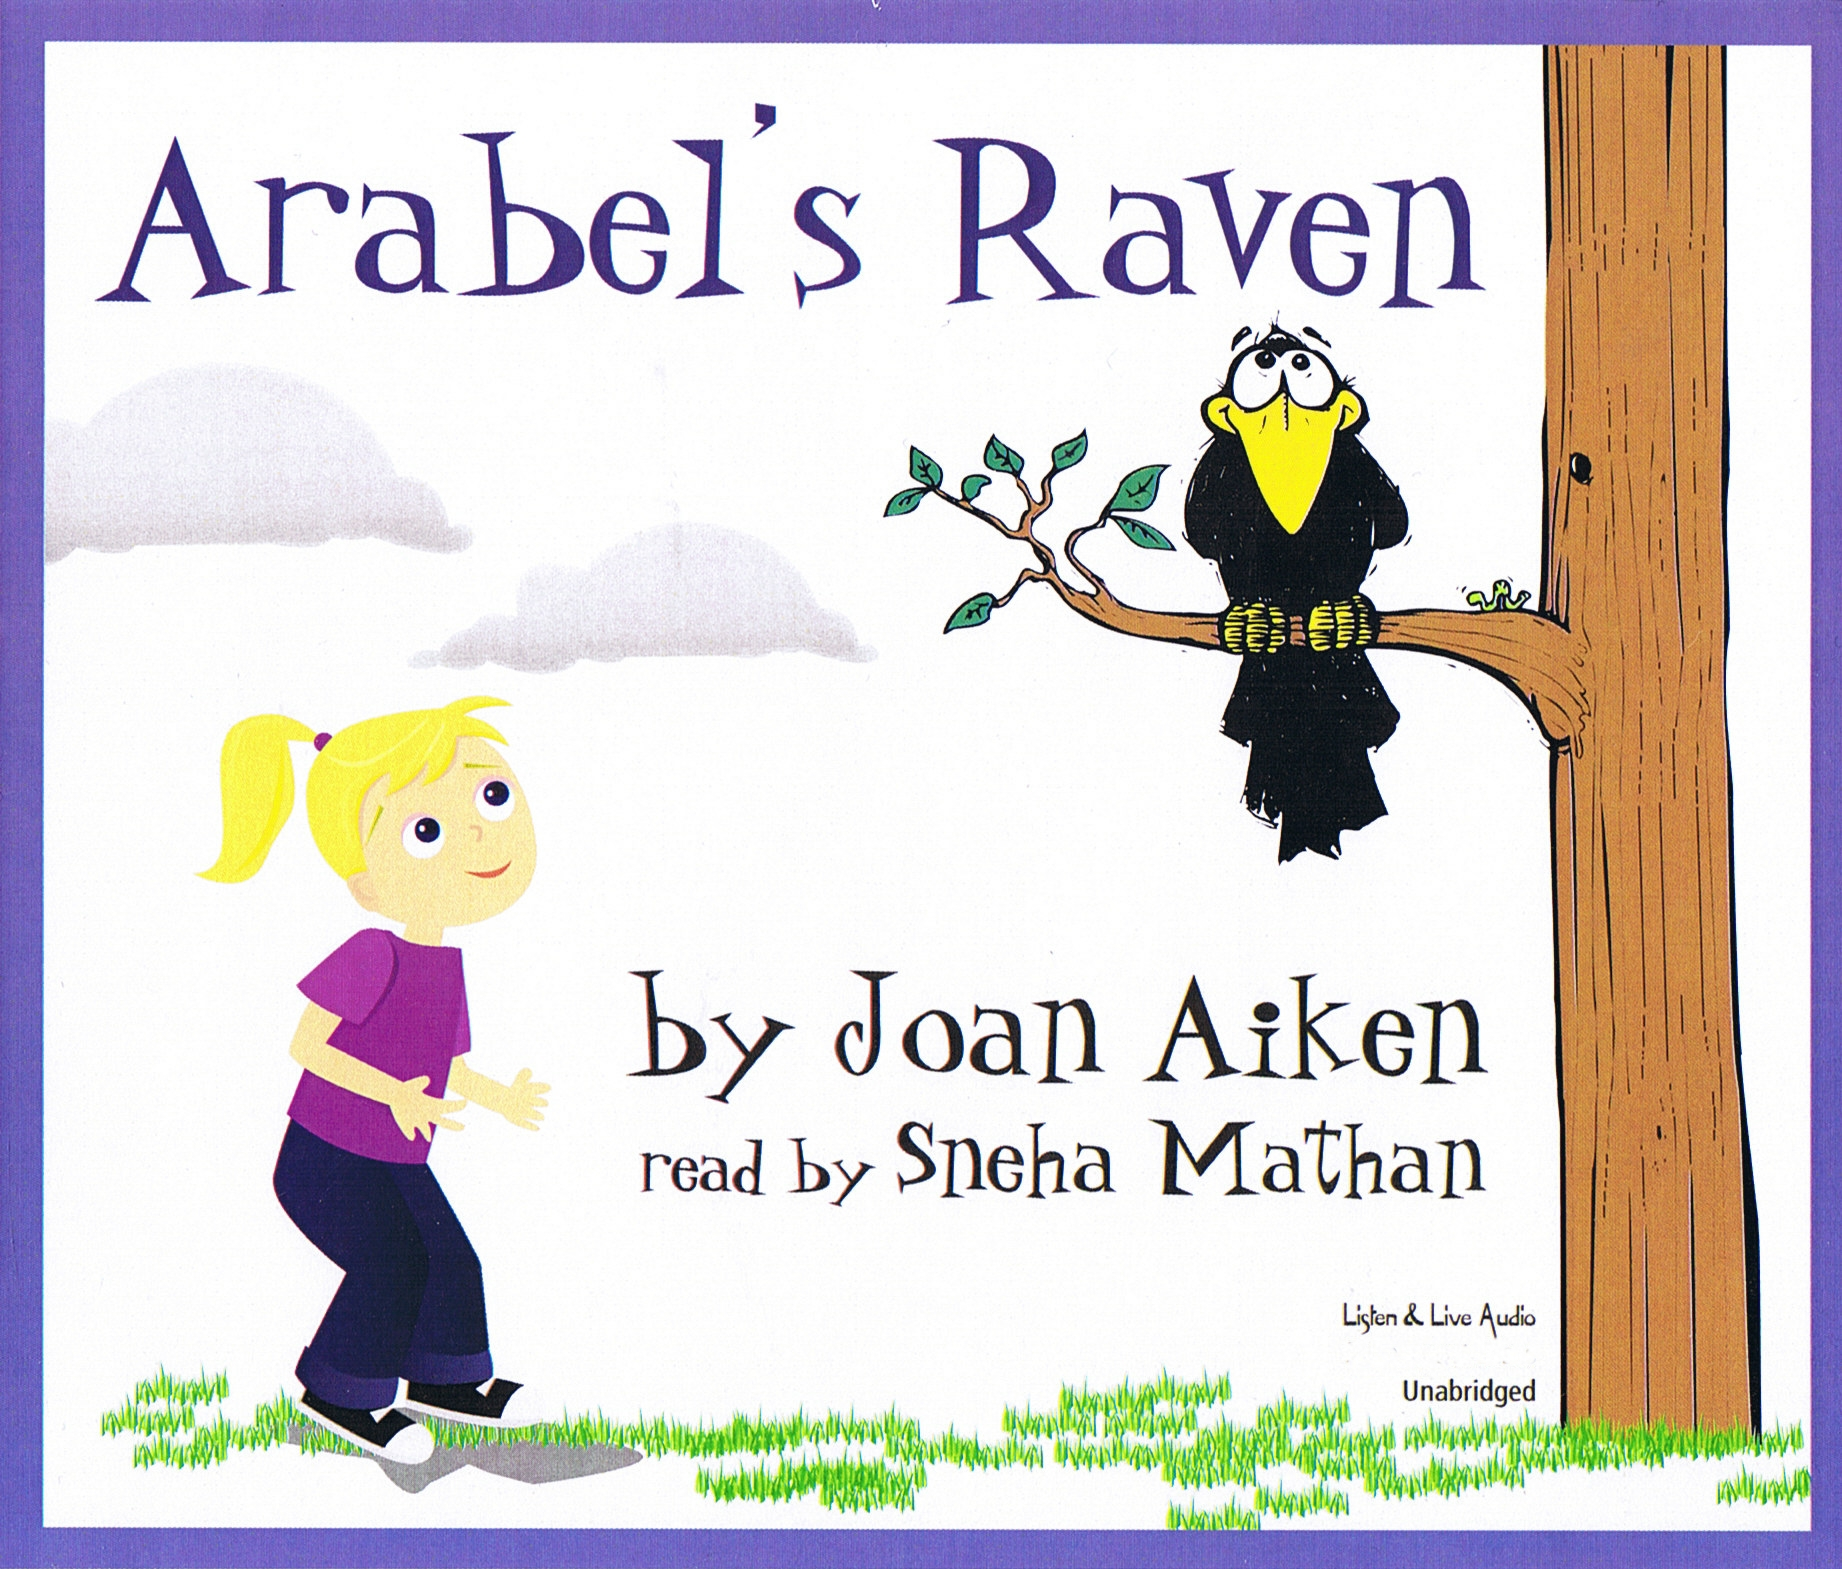 Arabel's Raven [3CD]